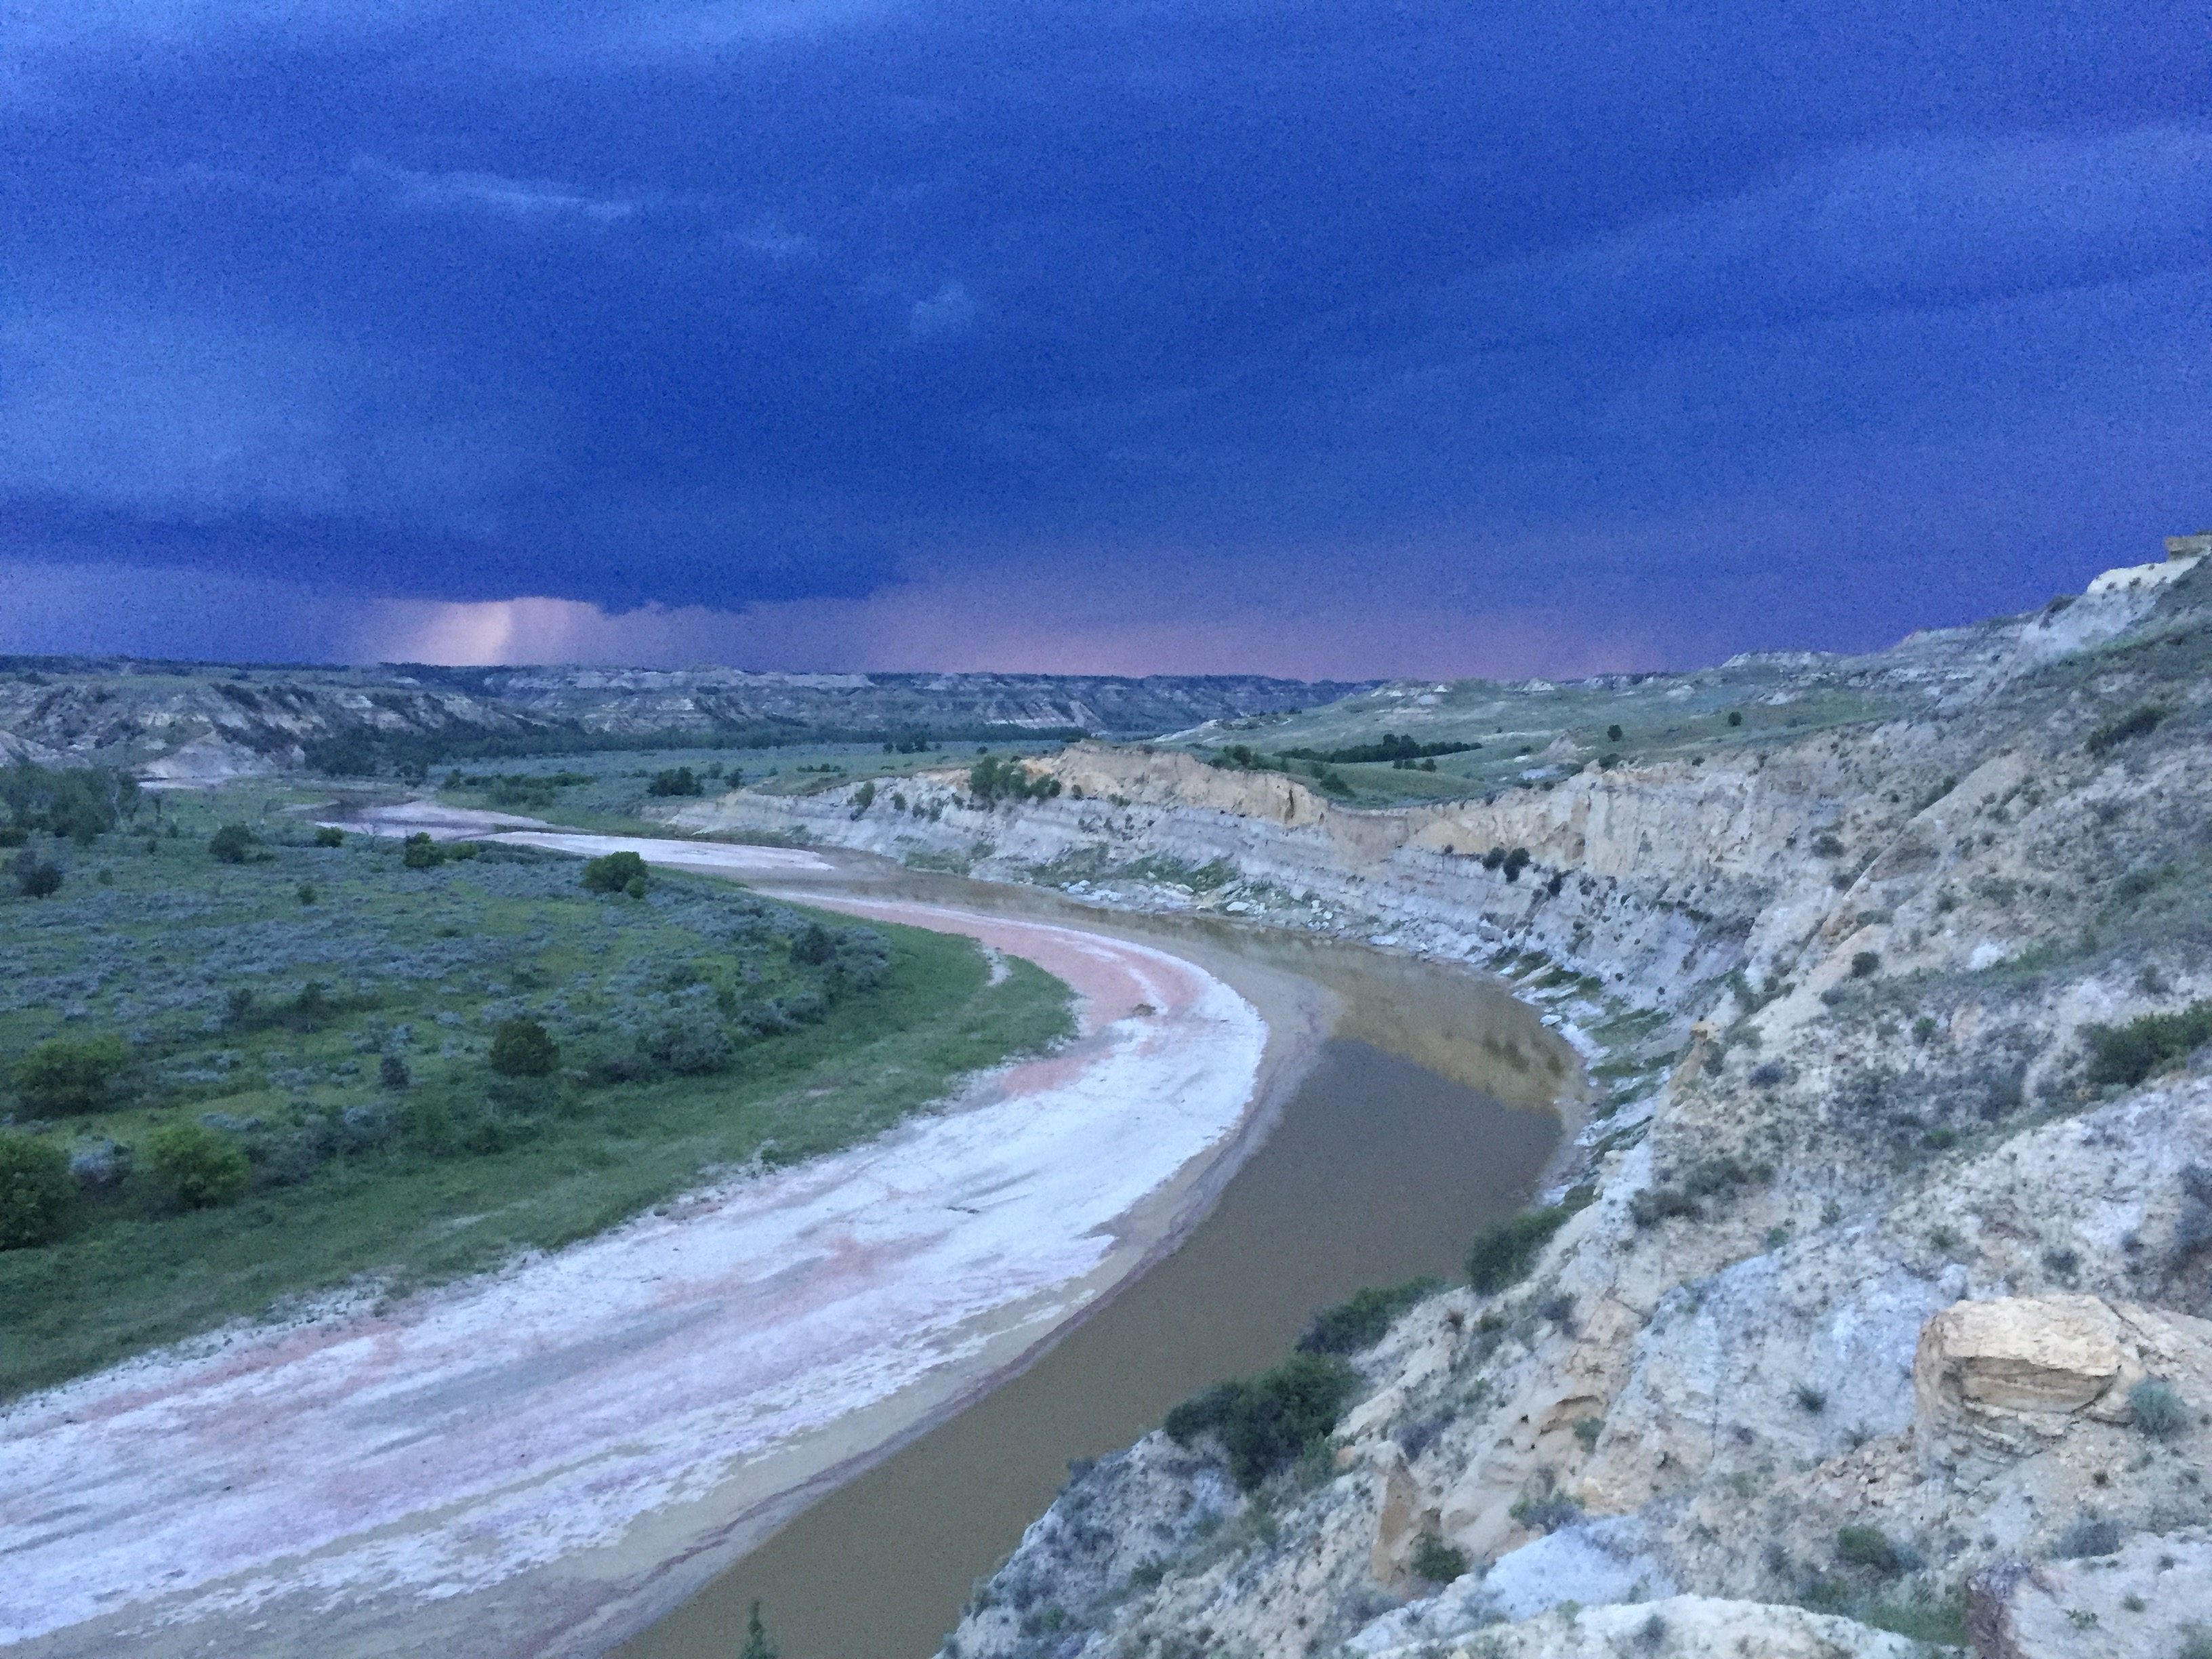 THEODORE ROOSEVELT NATIONAL PARK VIDEO: Dramatic badlands and presidential inspiration